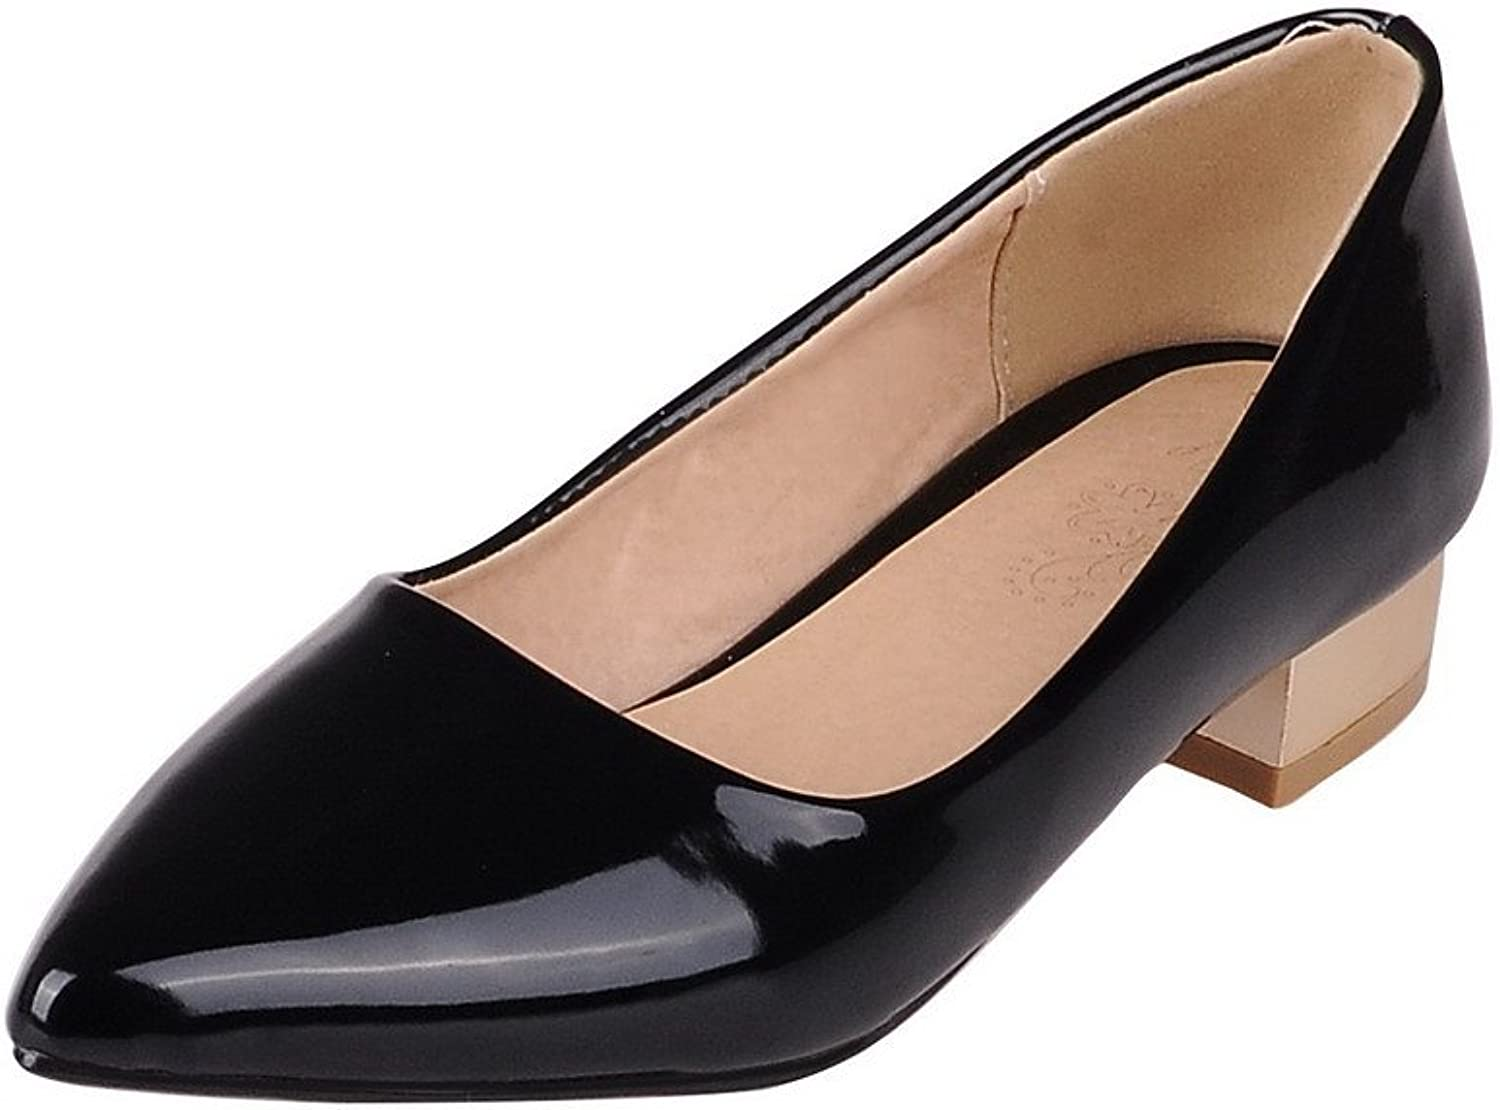 AmoonyFashion Women's Pull On Low Heels Patent Leather Solid Pointed Closed Toe Pumps-shoes